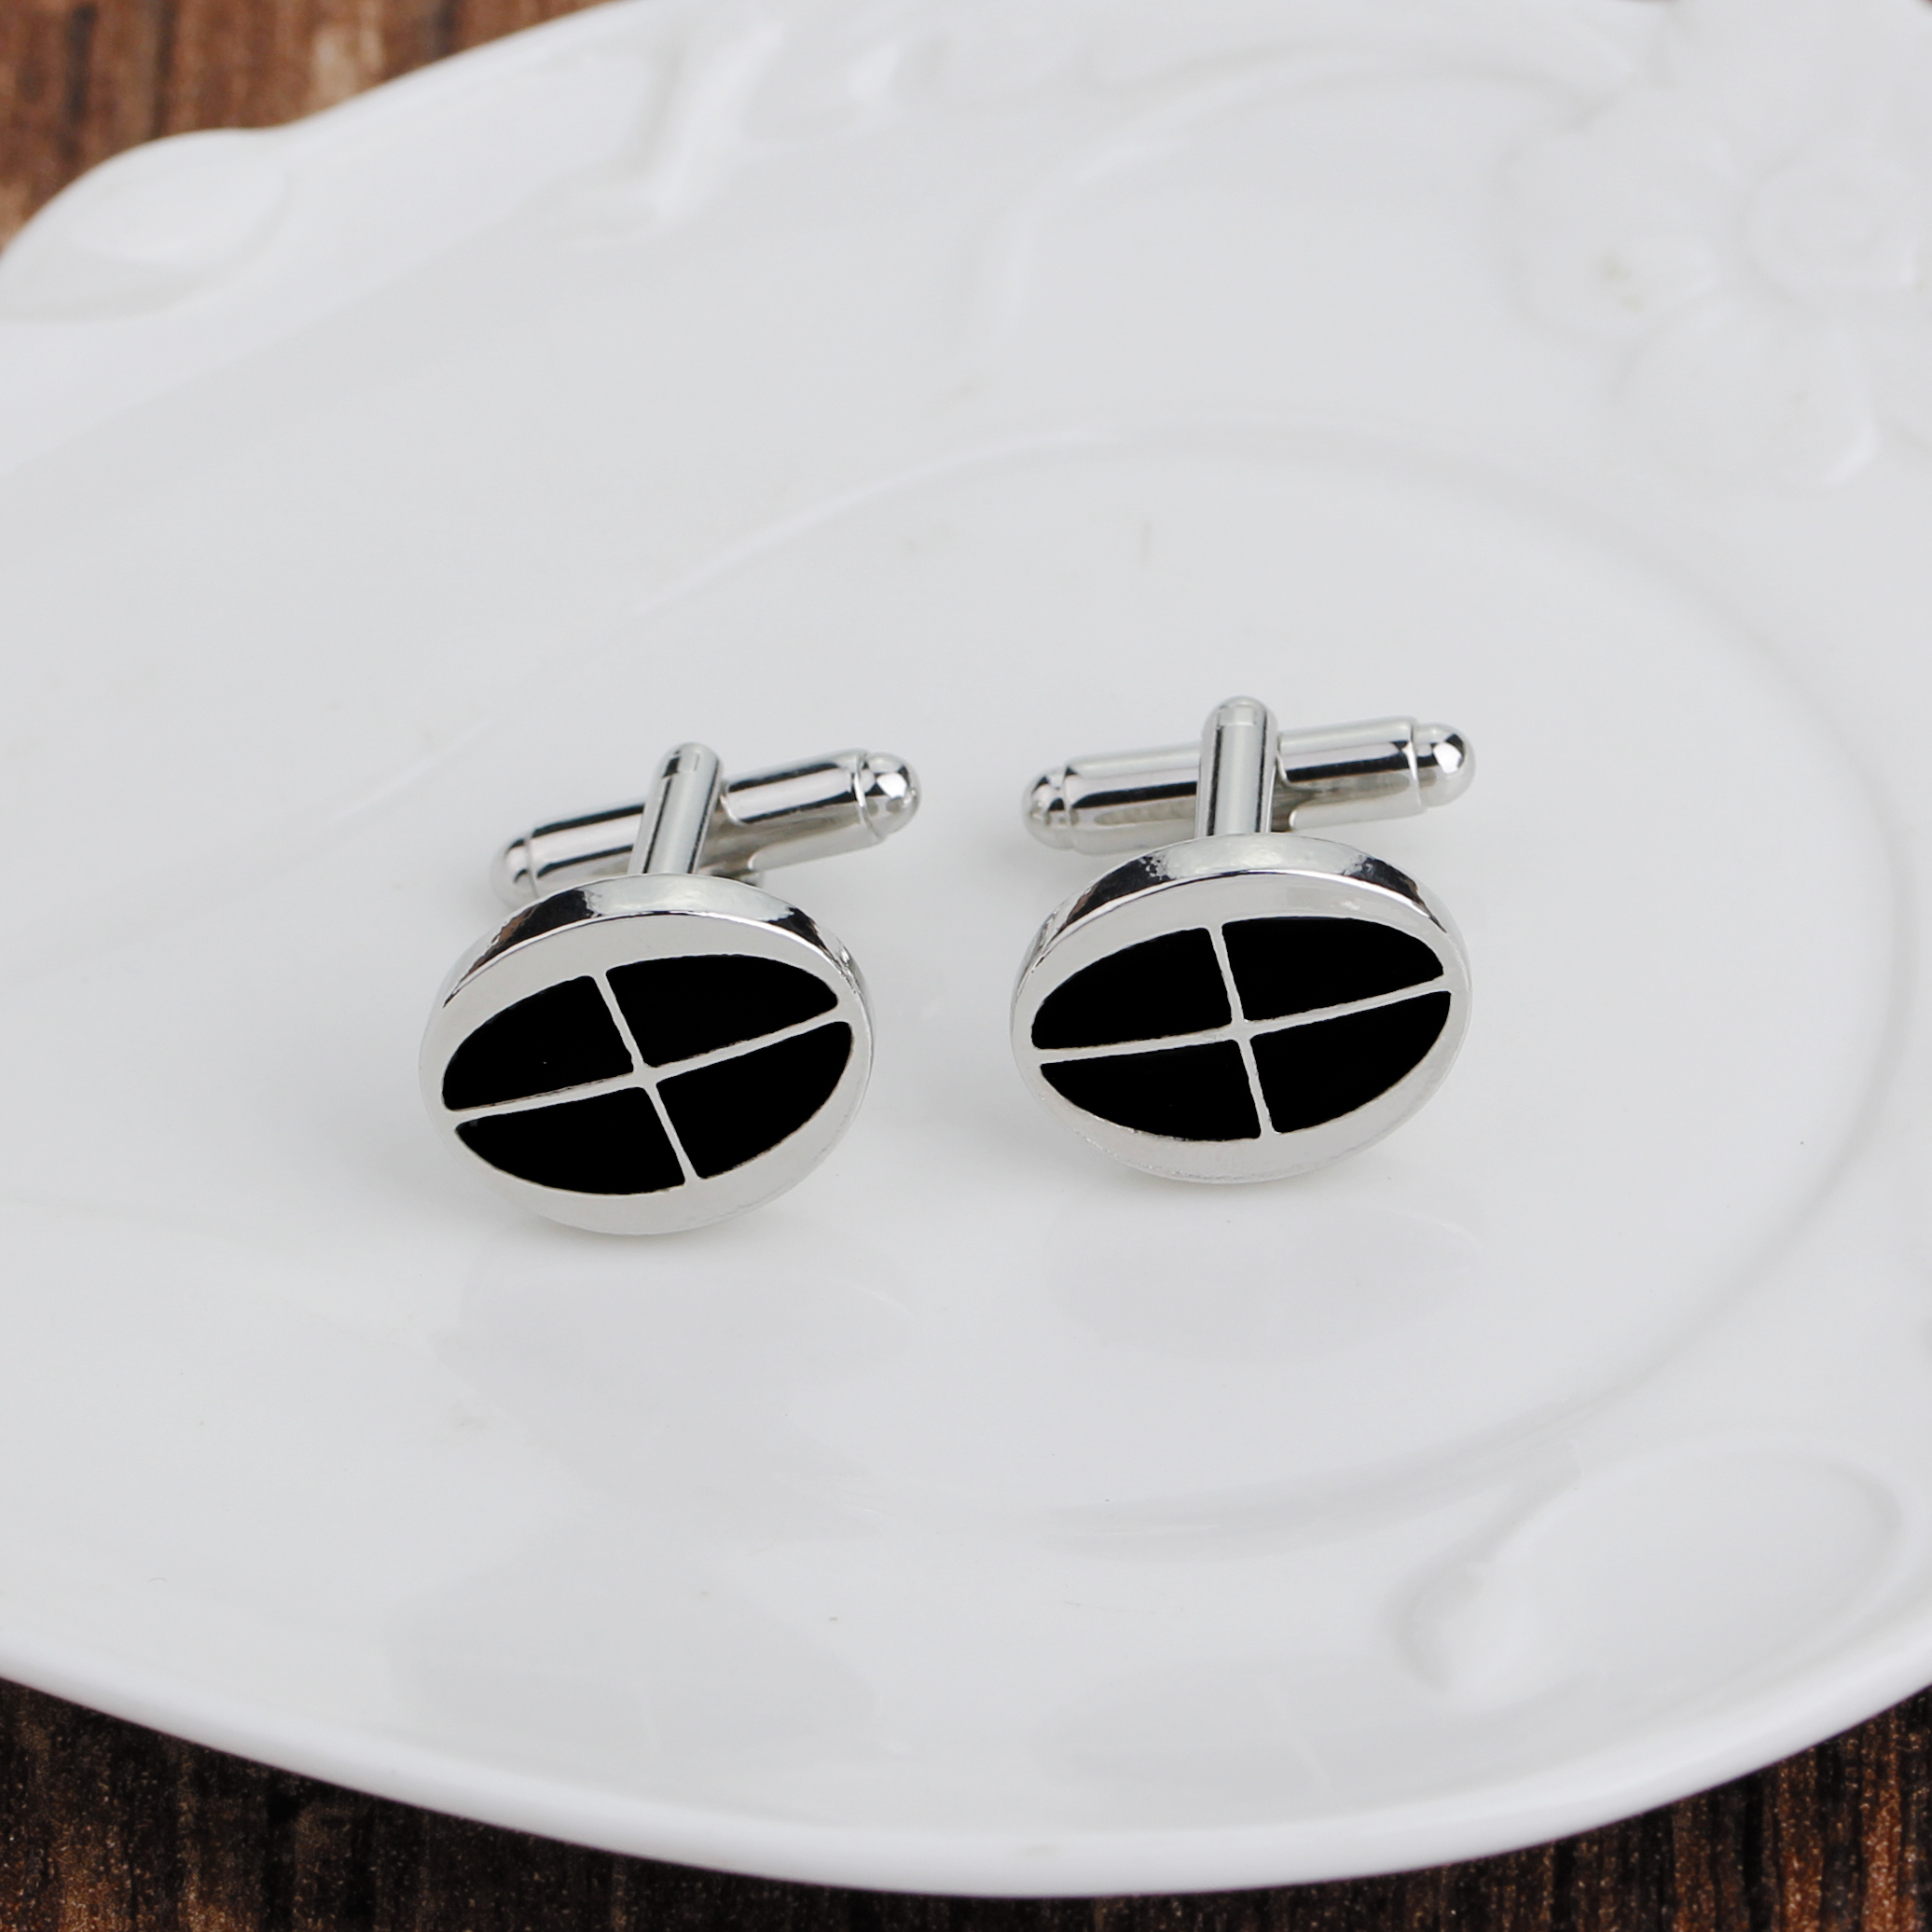 black enamel oval cuff link ellipse cufflink simple causal black button for French shirt fashion man cufflinks gift for Business in Tie Clips Cufflinks from Jewelry Accessories